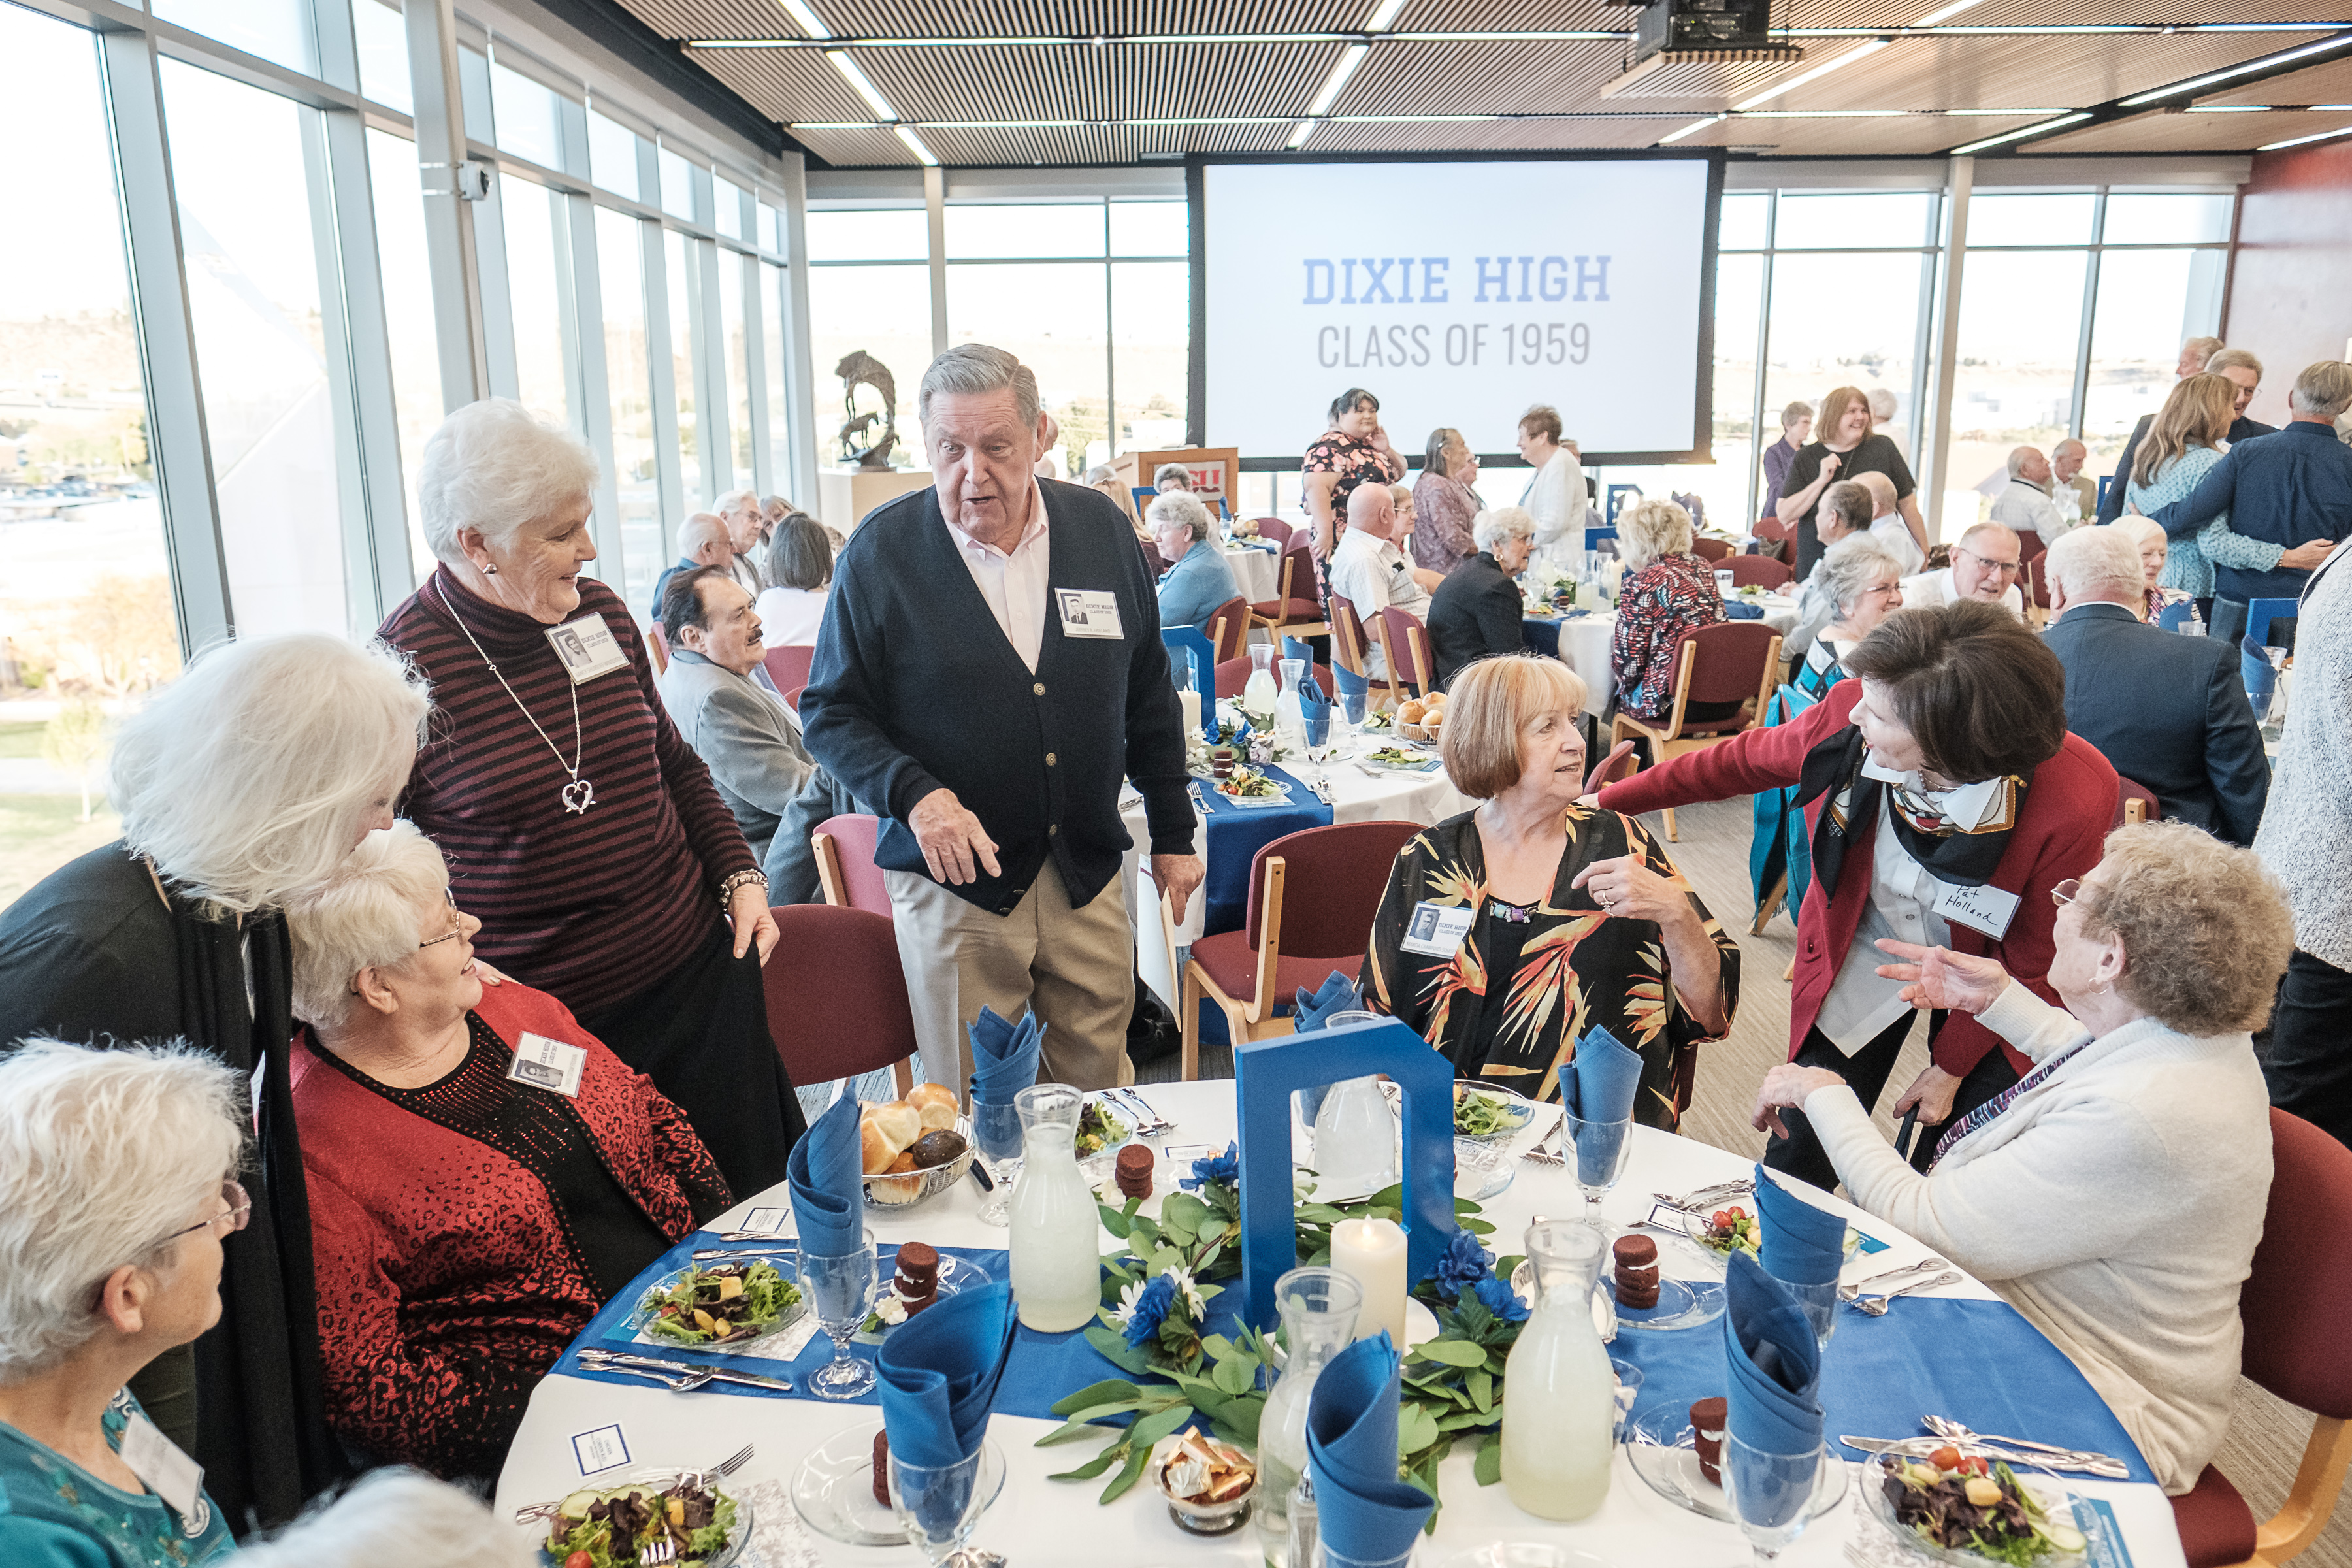 Elder Jeffrey R. Holland, standing center left, a member of the Quorum of the Twelve Apostles of The Church of Jesus Christ of Latter-day Saints, and his wife, Patricia Holland, second from right, greet a table of classmates and guests at the 60-year reunion for the Dixie High School class of 1959 on Thursday, Oct. 24, 2019, in St. George.